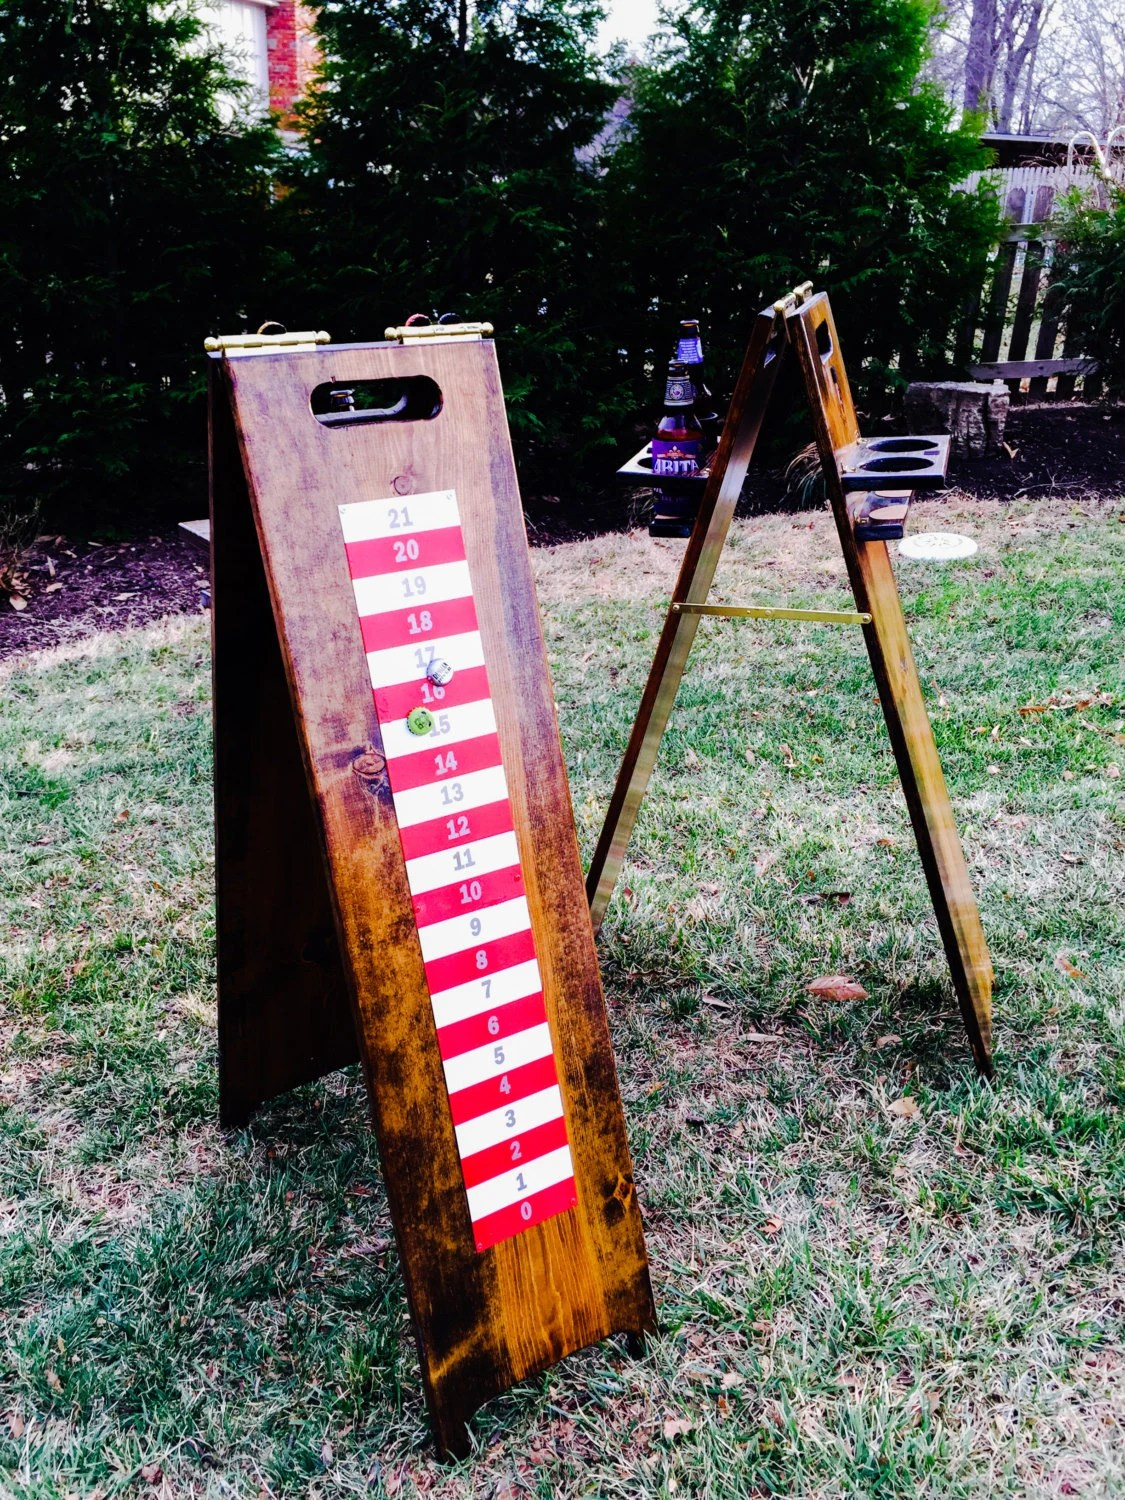 Backyard Games Scoreboard And Drink Holder